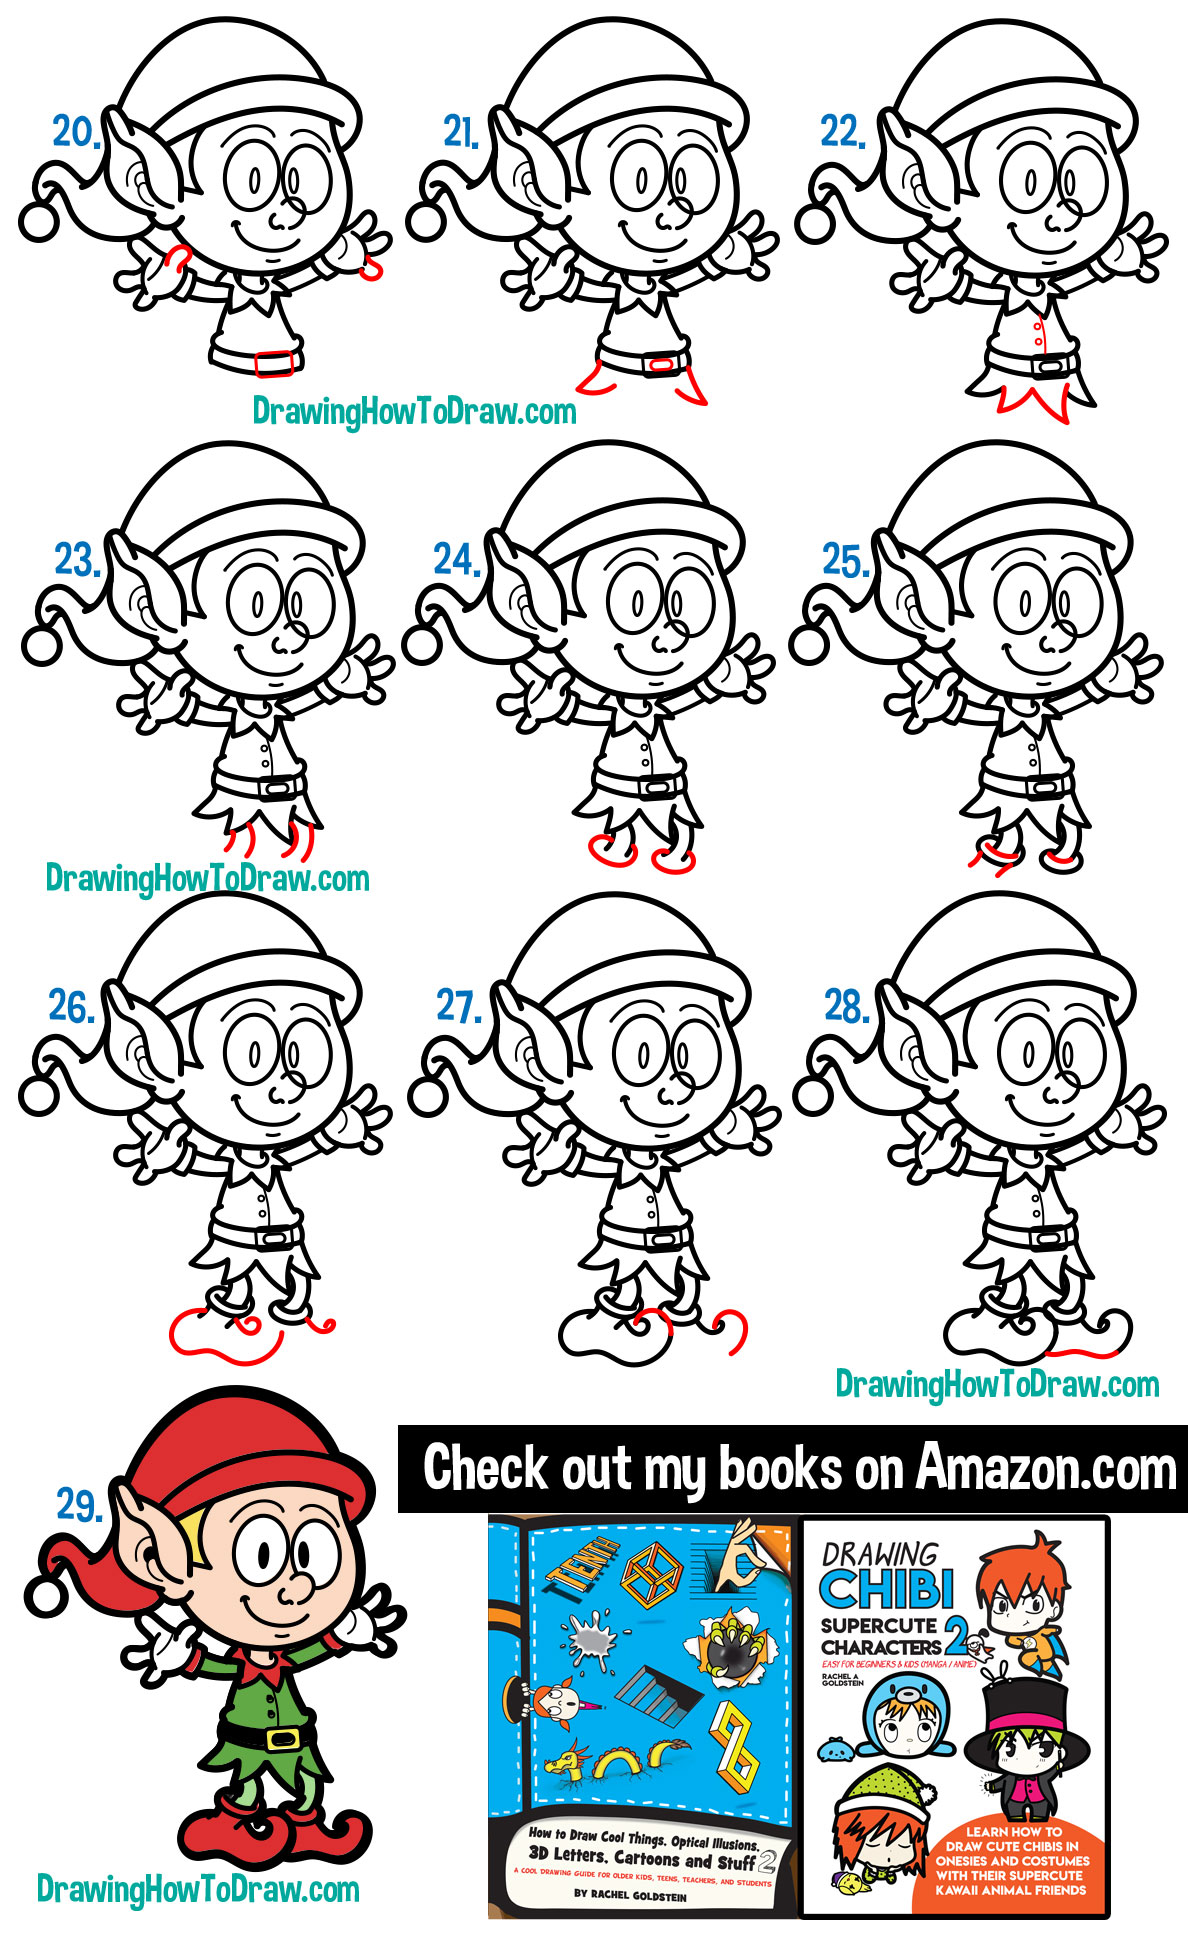 Learn How to Draw a Cartoon Elf for Christmas Simple Steps Drawing Tutorial for Beginners